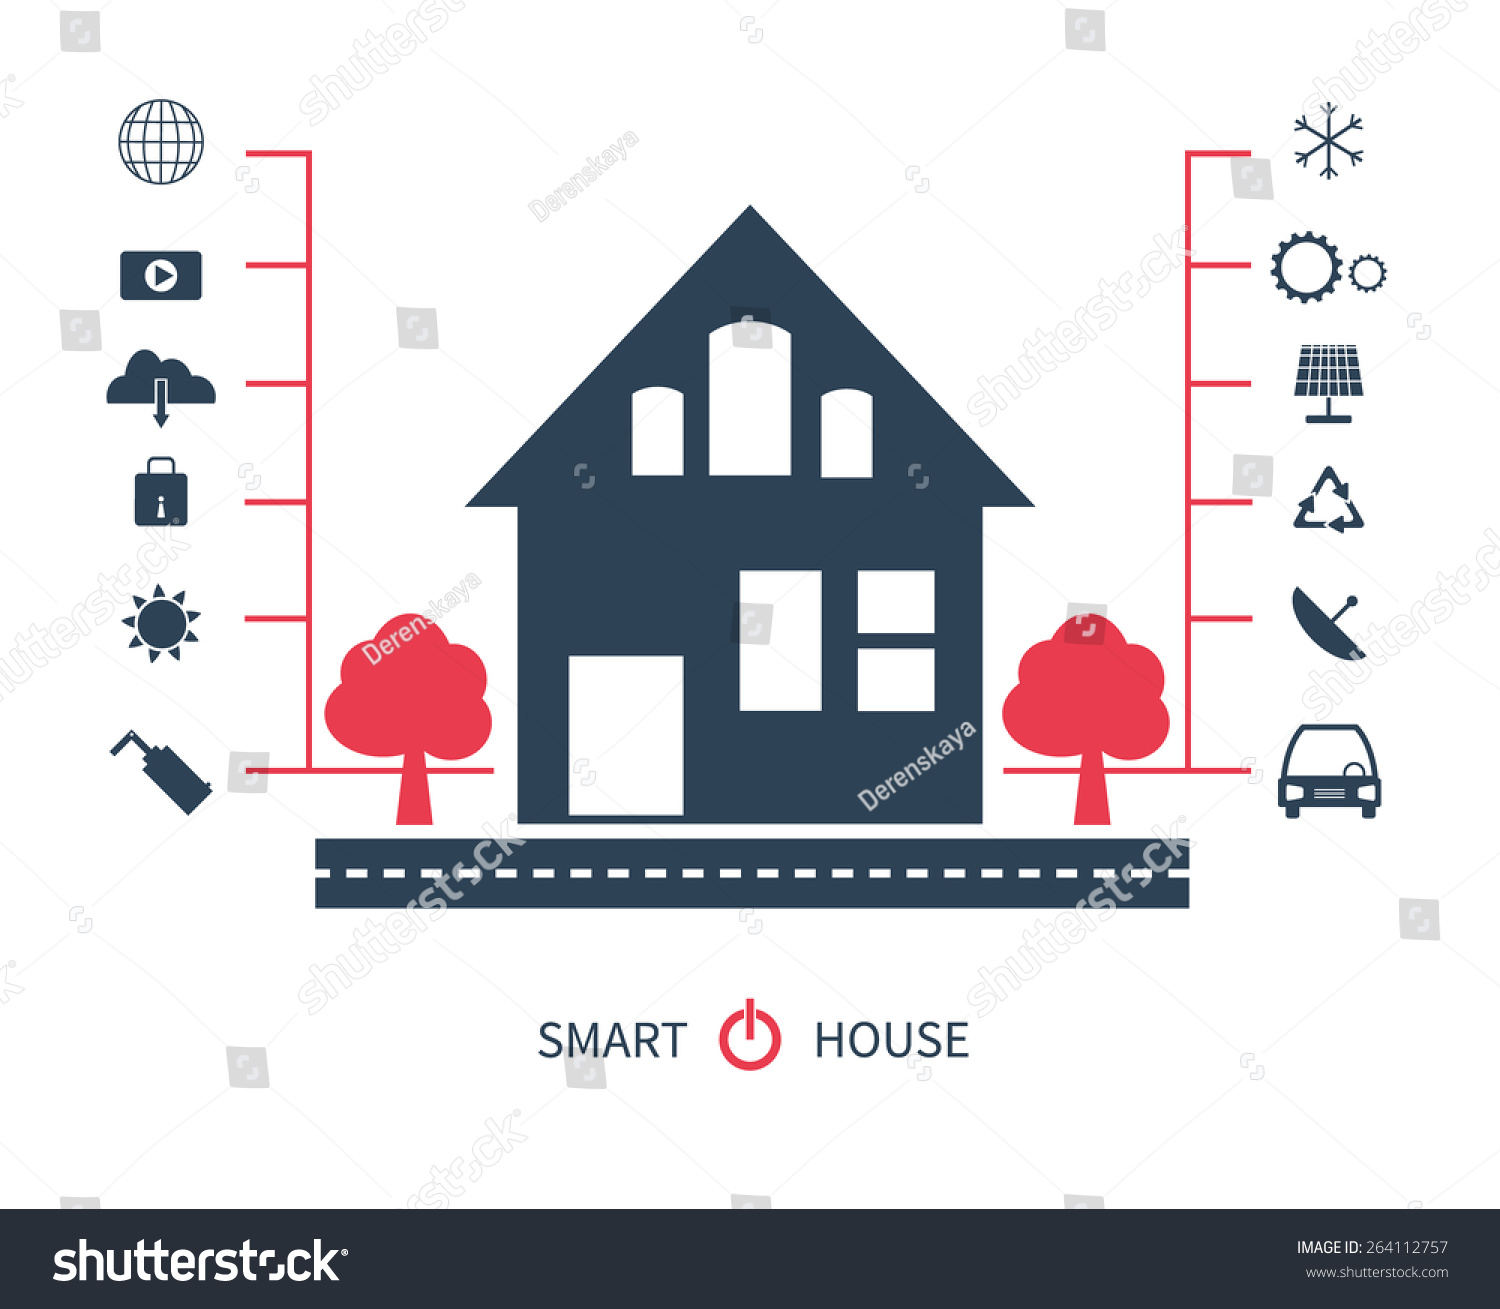 Vector Flat Illustration Concept Smart House Stock Vector